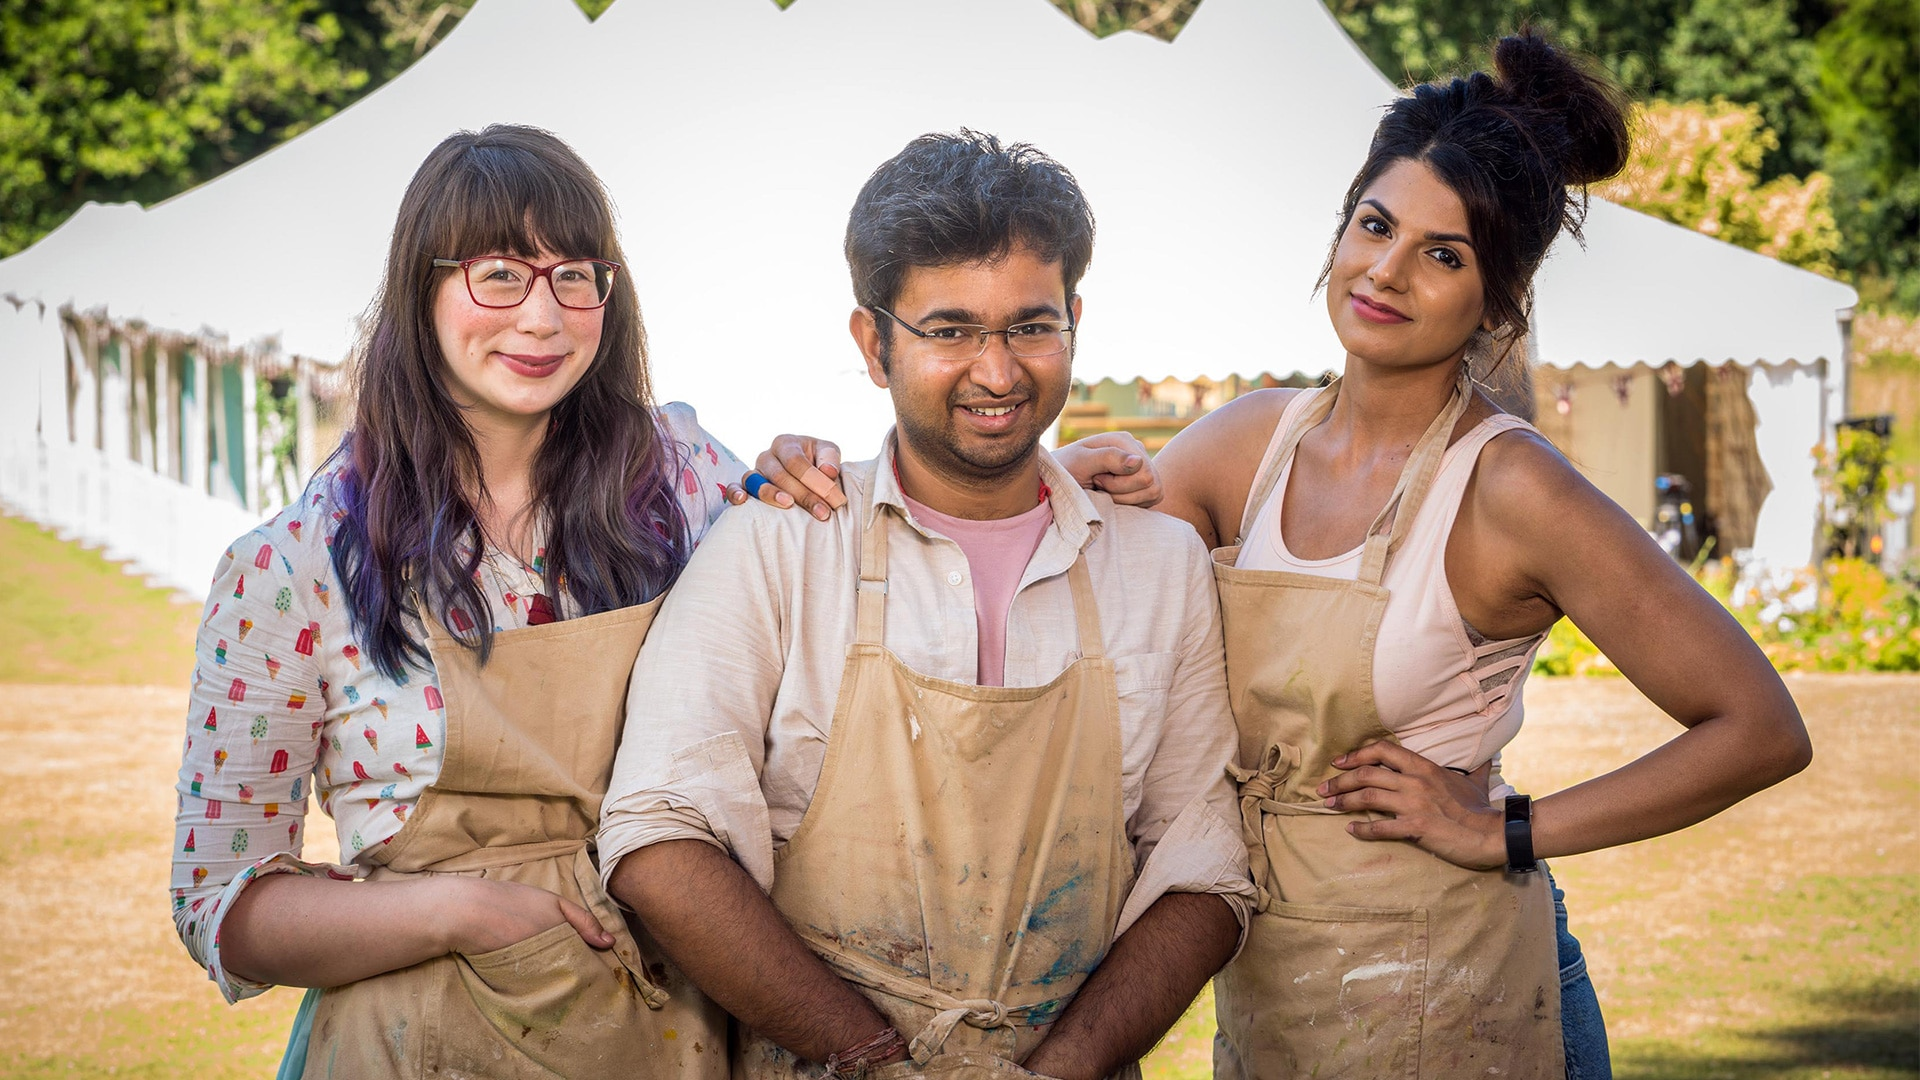 The Great British Bake Off - All 4